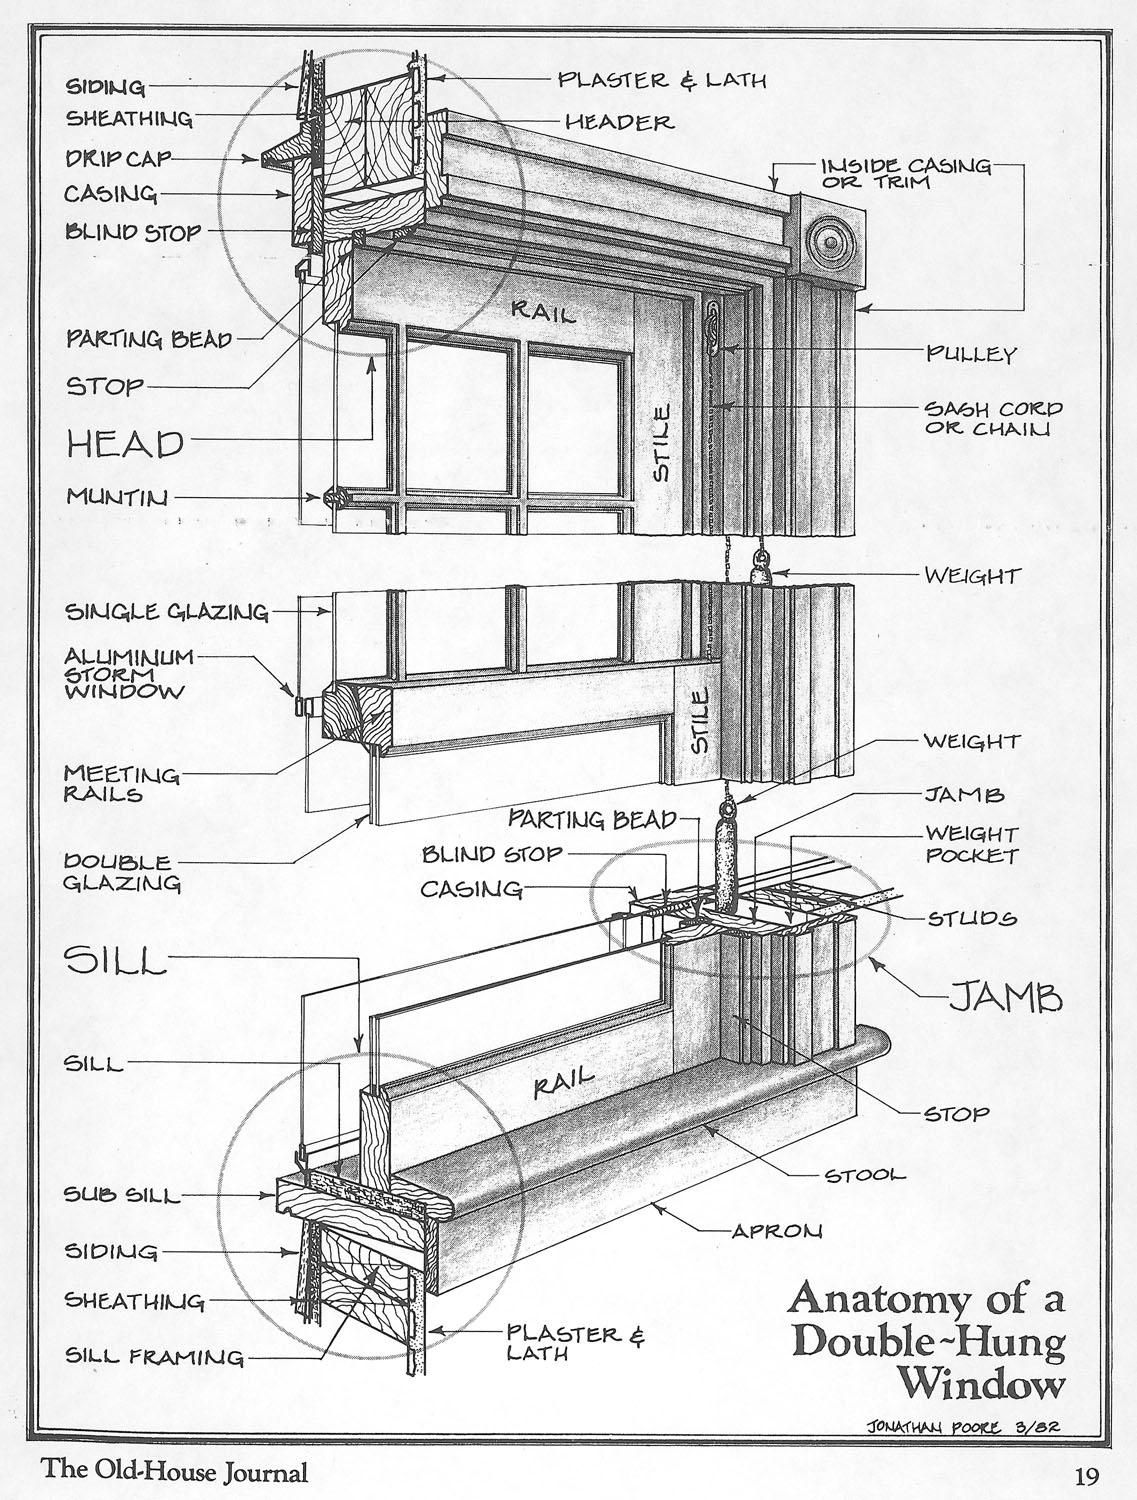 Anatomy Of A Double Hung Window